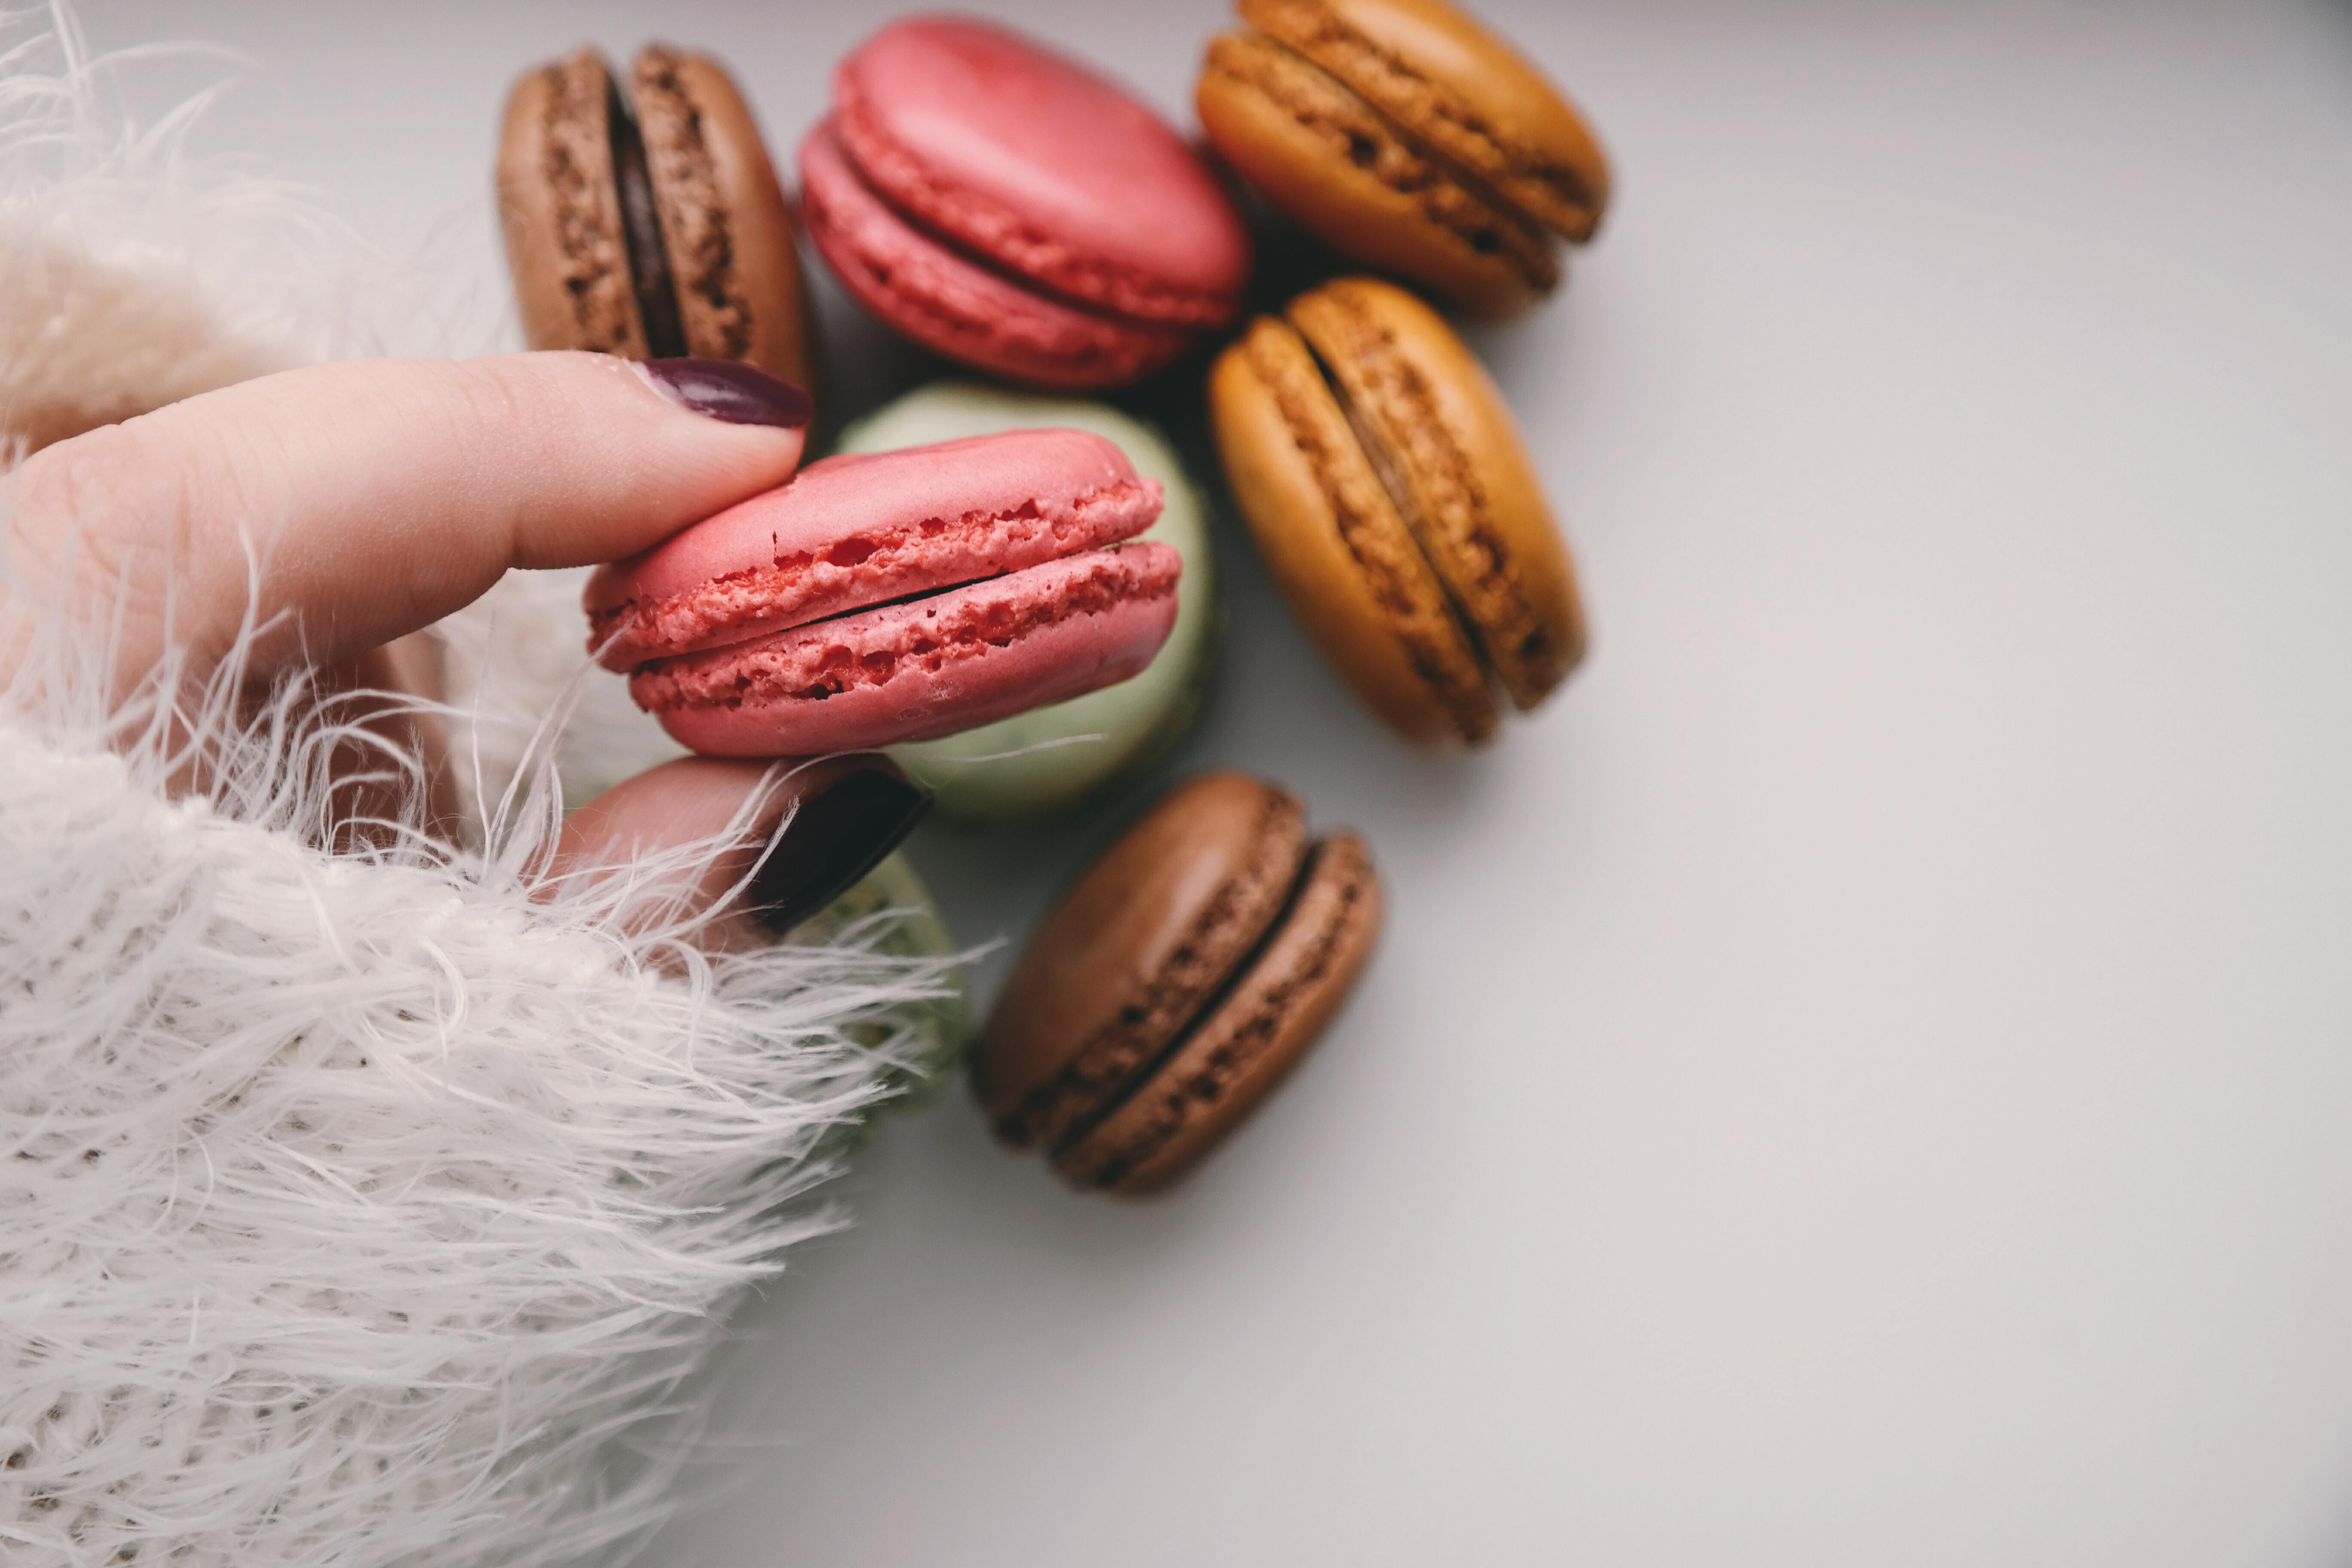 person holding french macarons